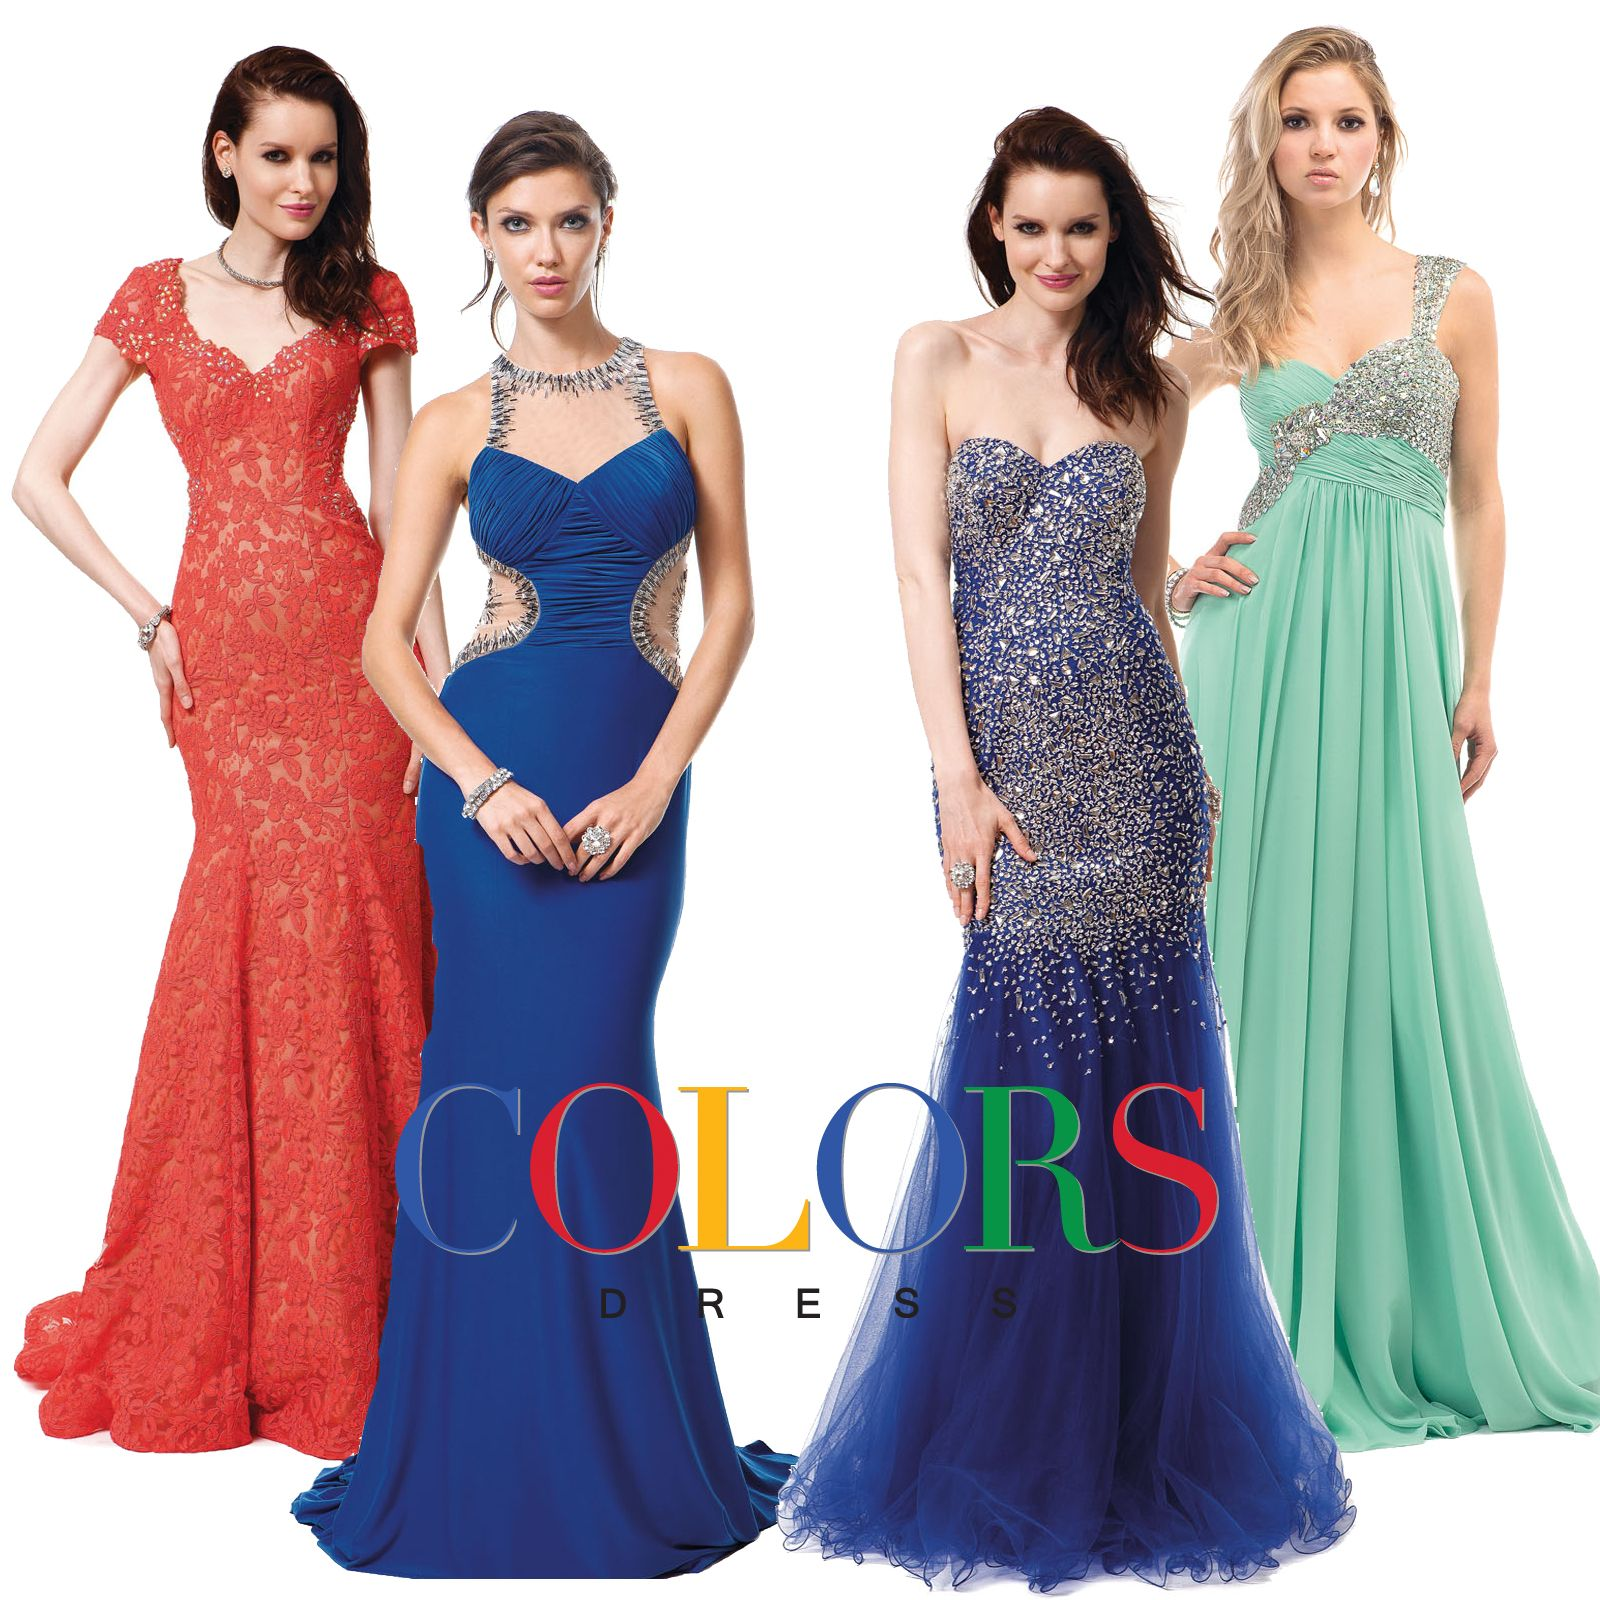 Fashion Superbowl Who Are You Rooting For Colorsdress Fashion Superbowl Patriots Seahawks Seattle Newen Colorful Dresses Backless Dress Formal Dresses